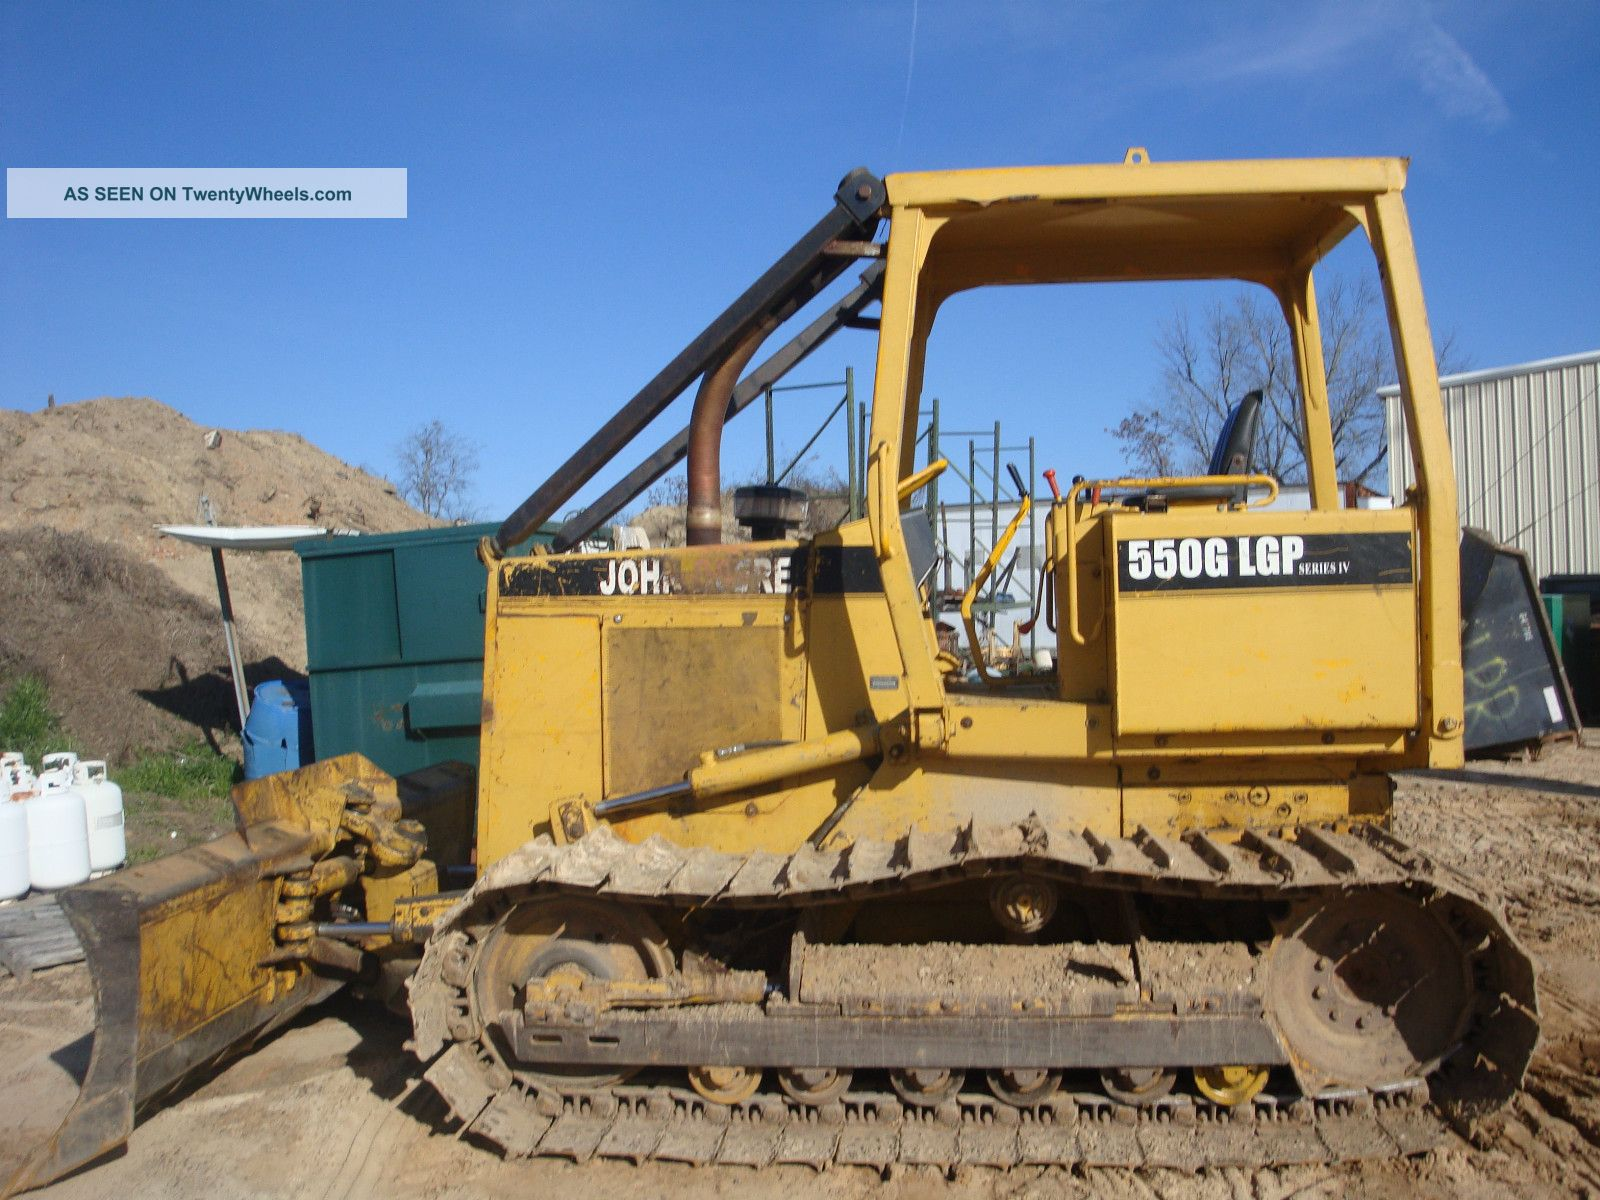 1992 John Deere 550g Lgp Dozer Crawler Dozers & Loaders photo